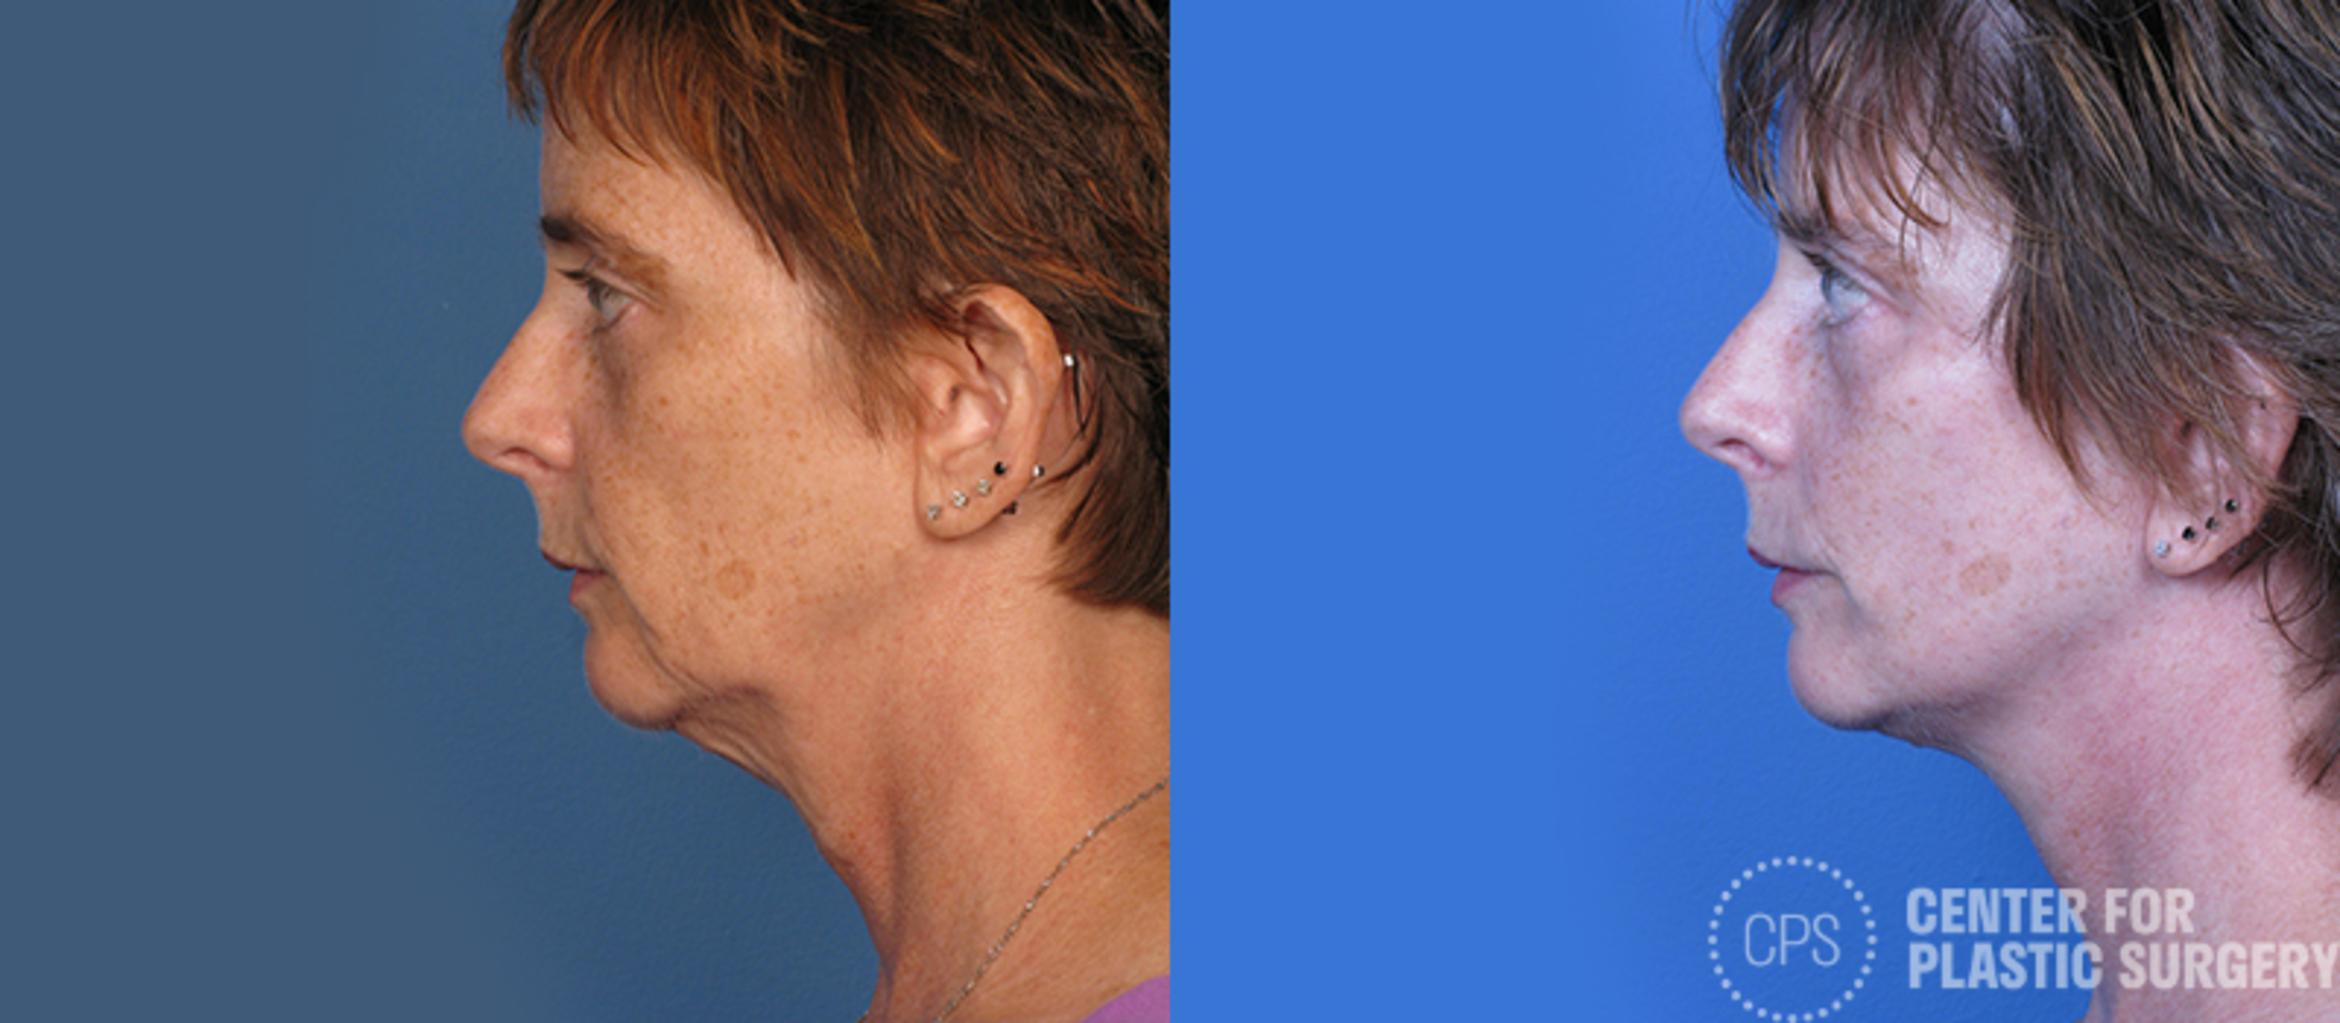 Facelift Case 7 Before & After Left Side | Annandale, VA & Chevy Chase, MD, Washington D.C. Metropolitan Area | Center for Plastic Surgery